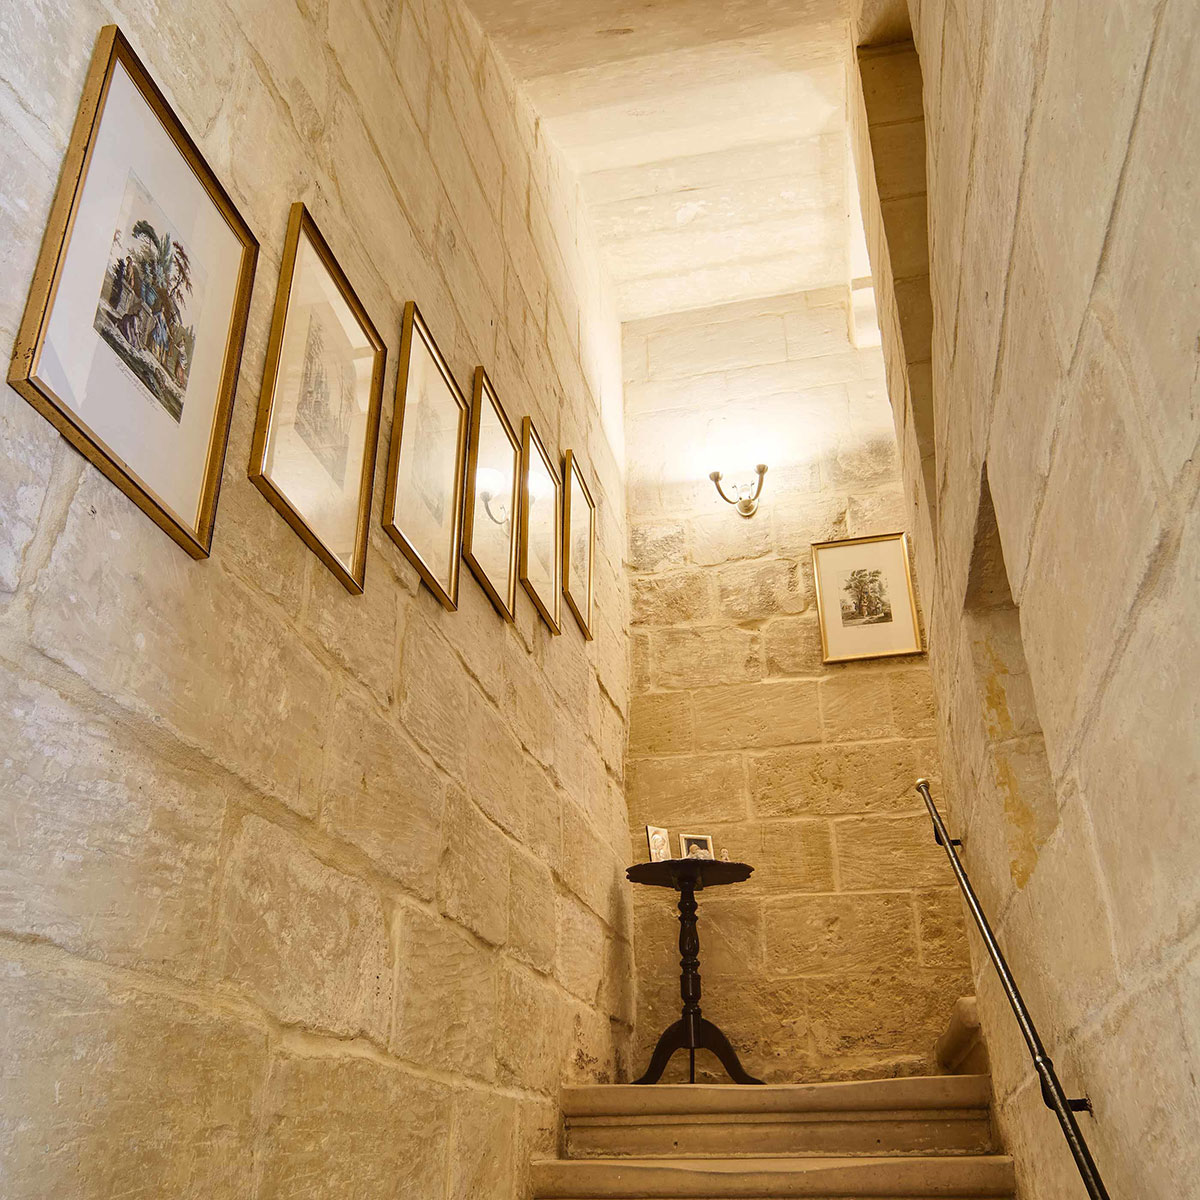 Alterations and extensions to Townhouse, Luqa